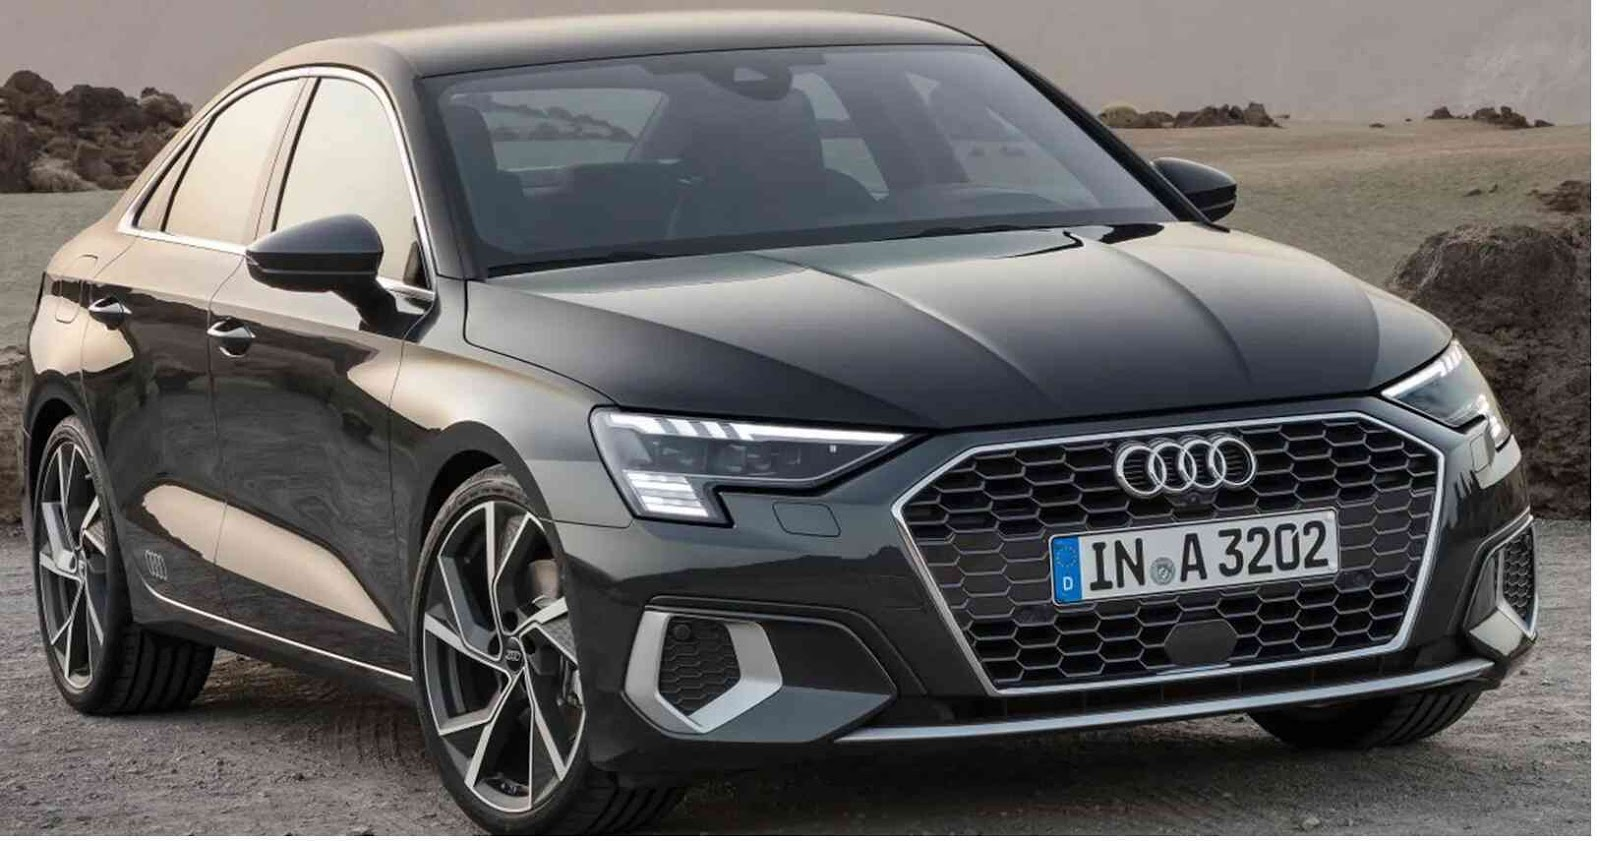 3 Audi A3 Coming With A Single Engine Option